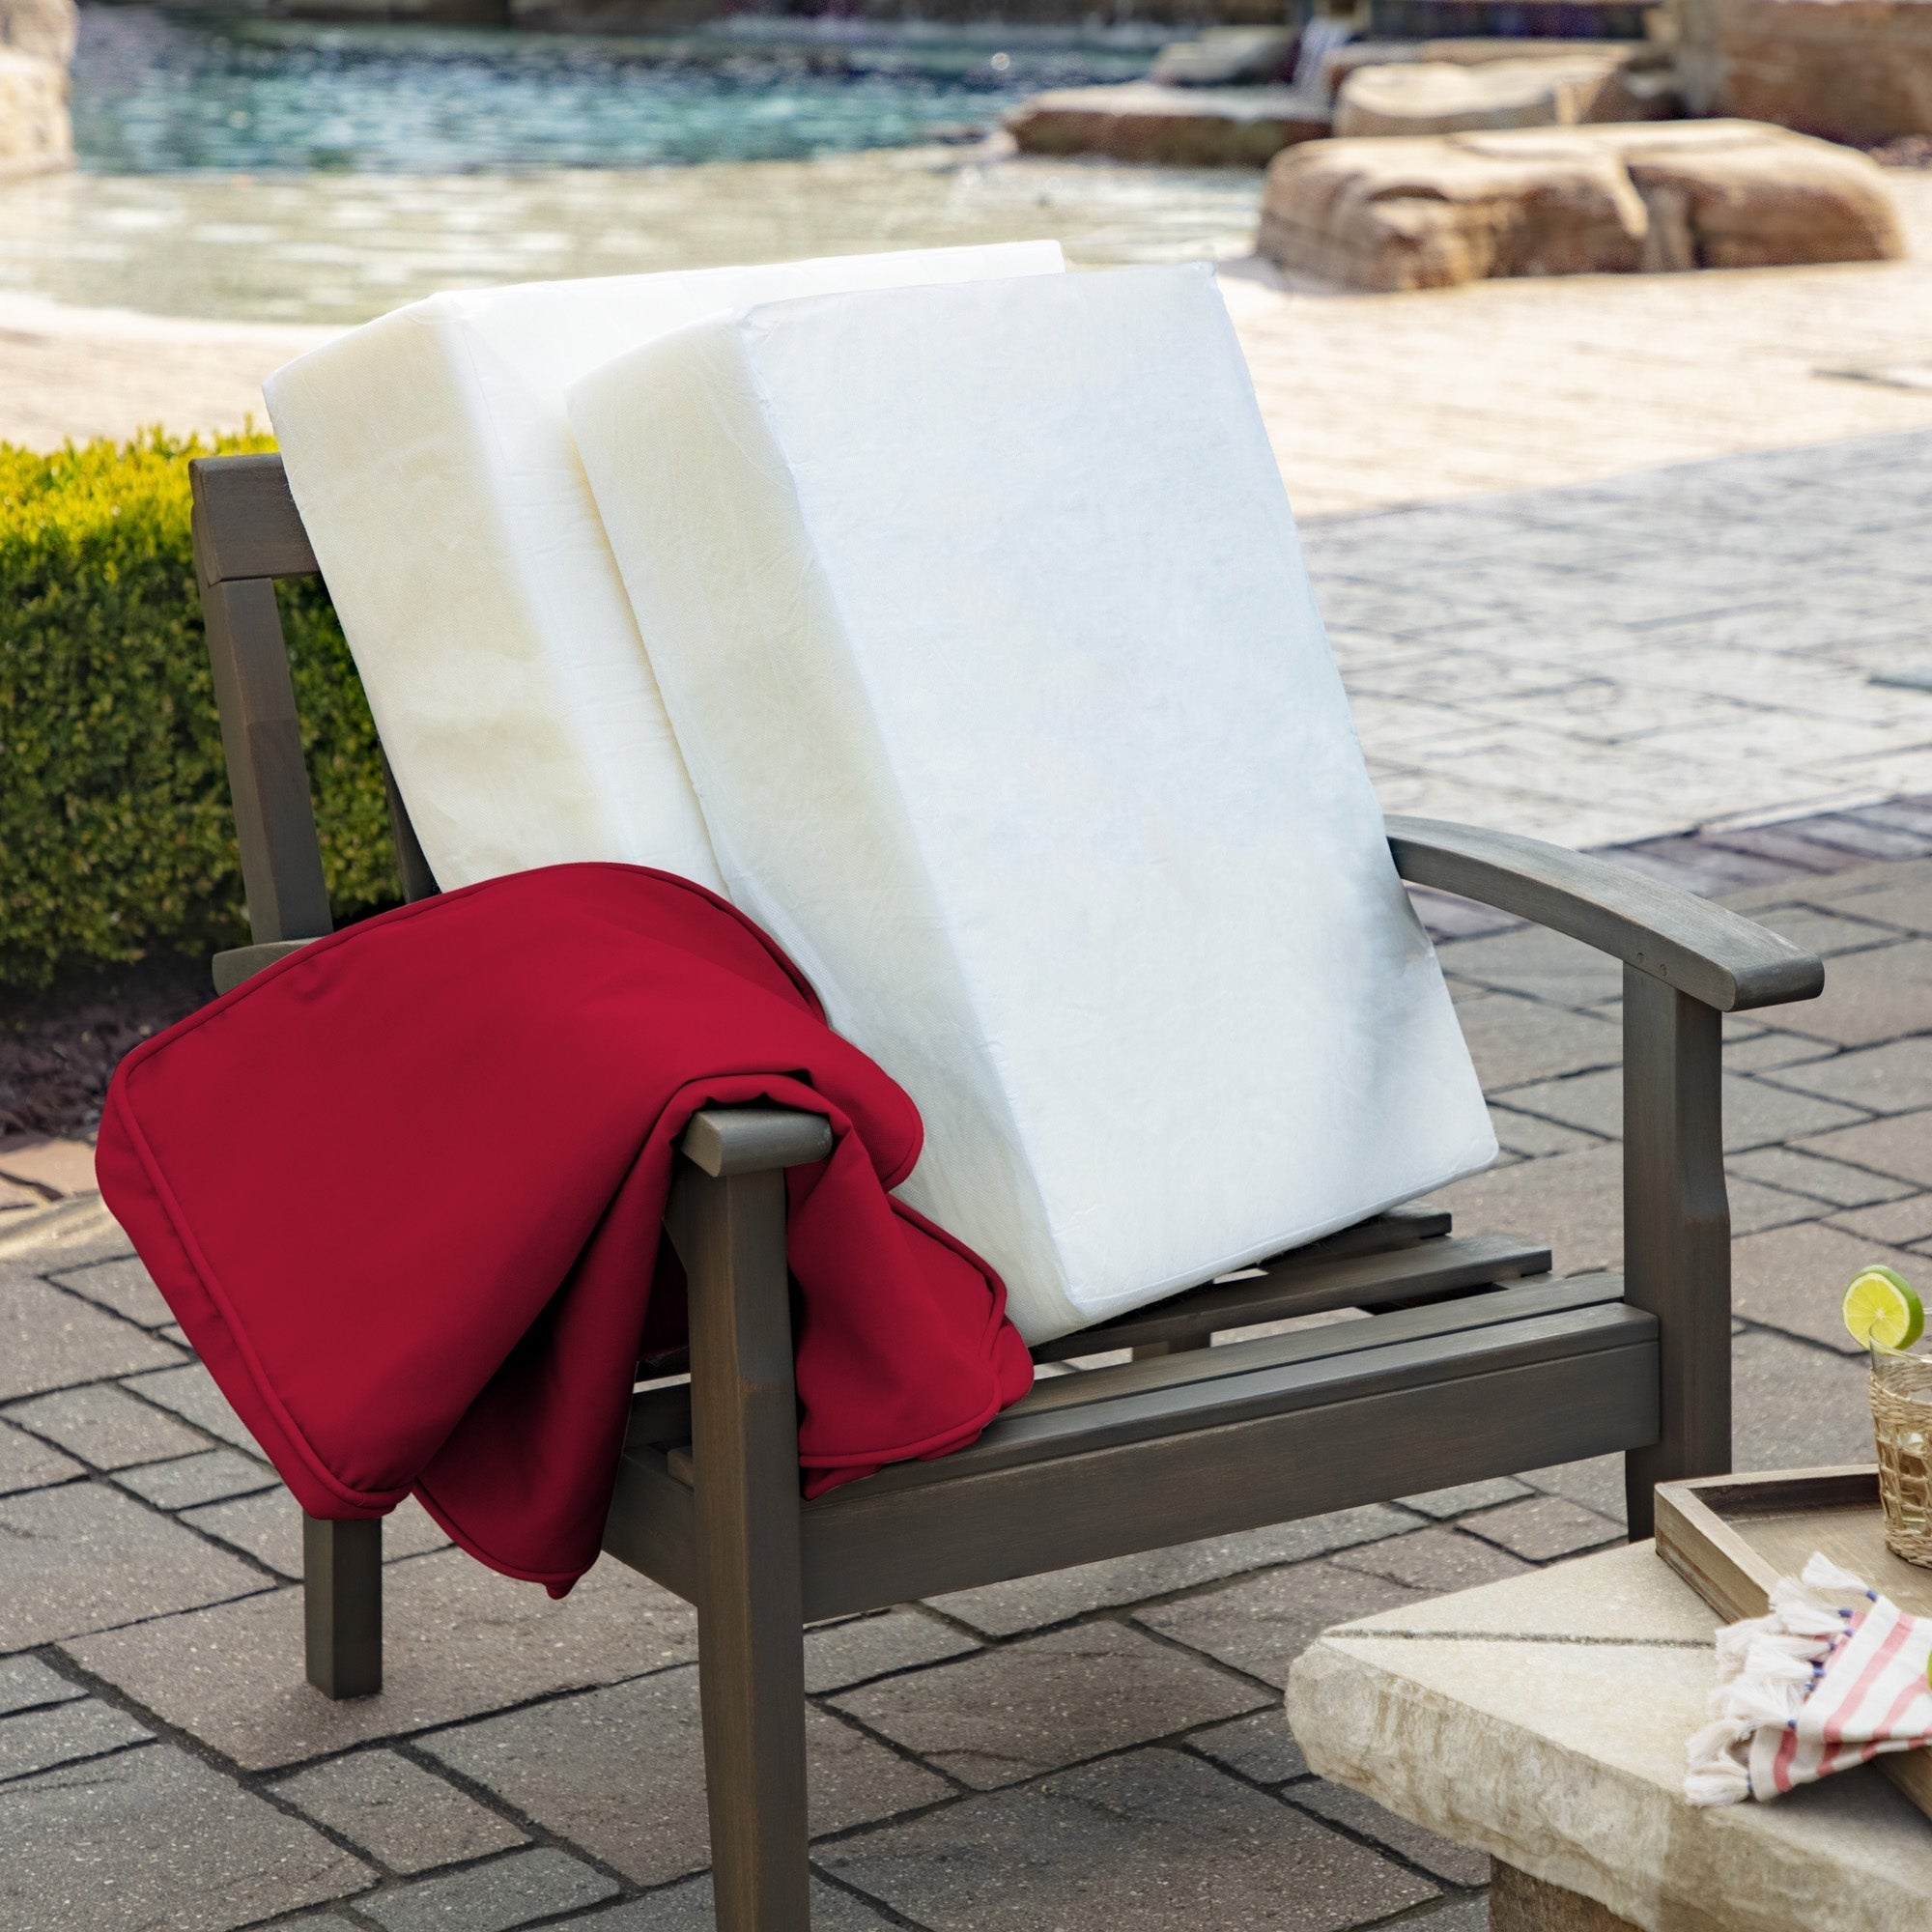 Arden Selections Profoam Acrylic Deep Seat Cushion Set 18 L X 24 W X 6 H In Overstock 28528794